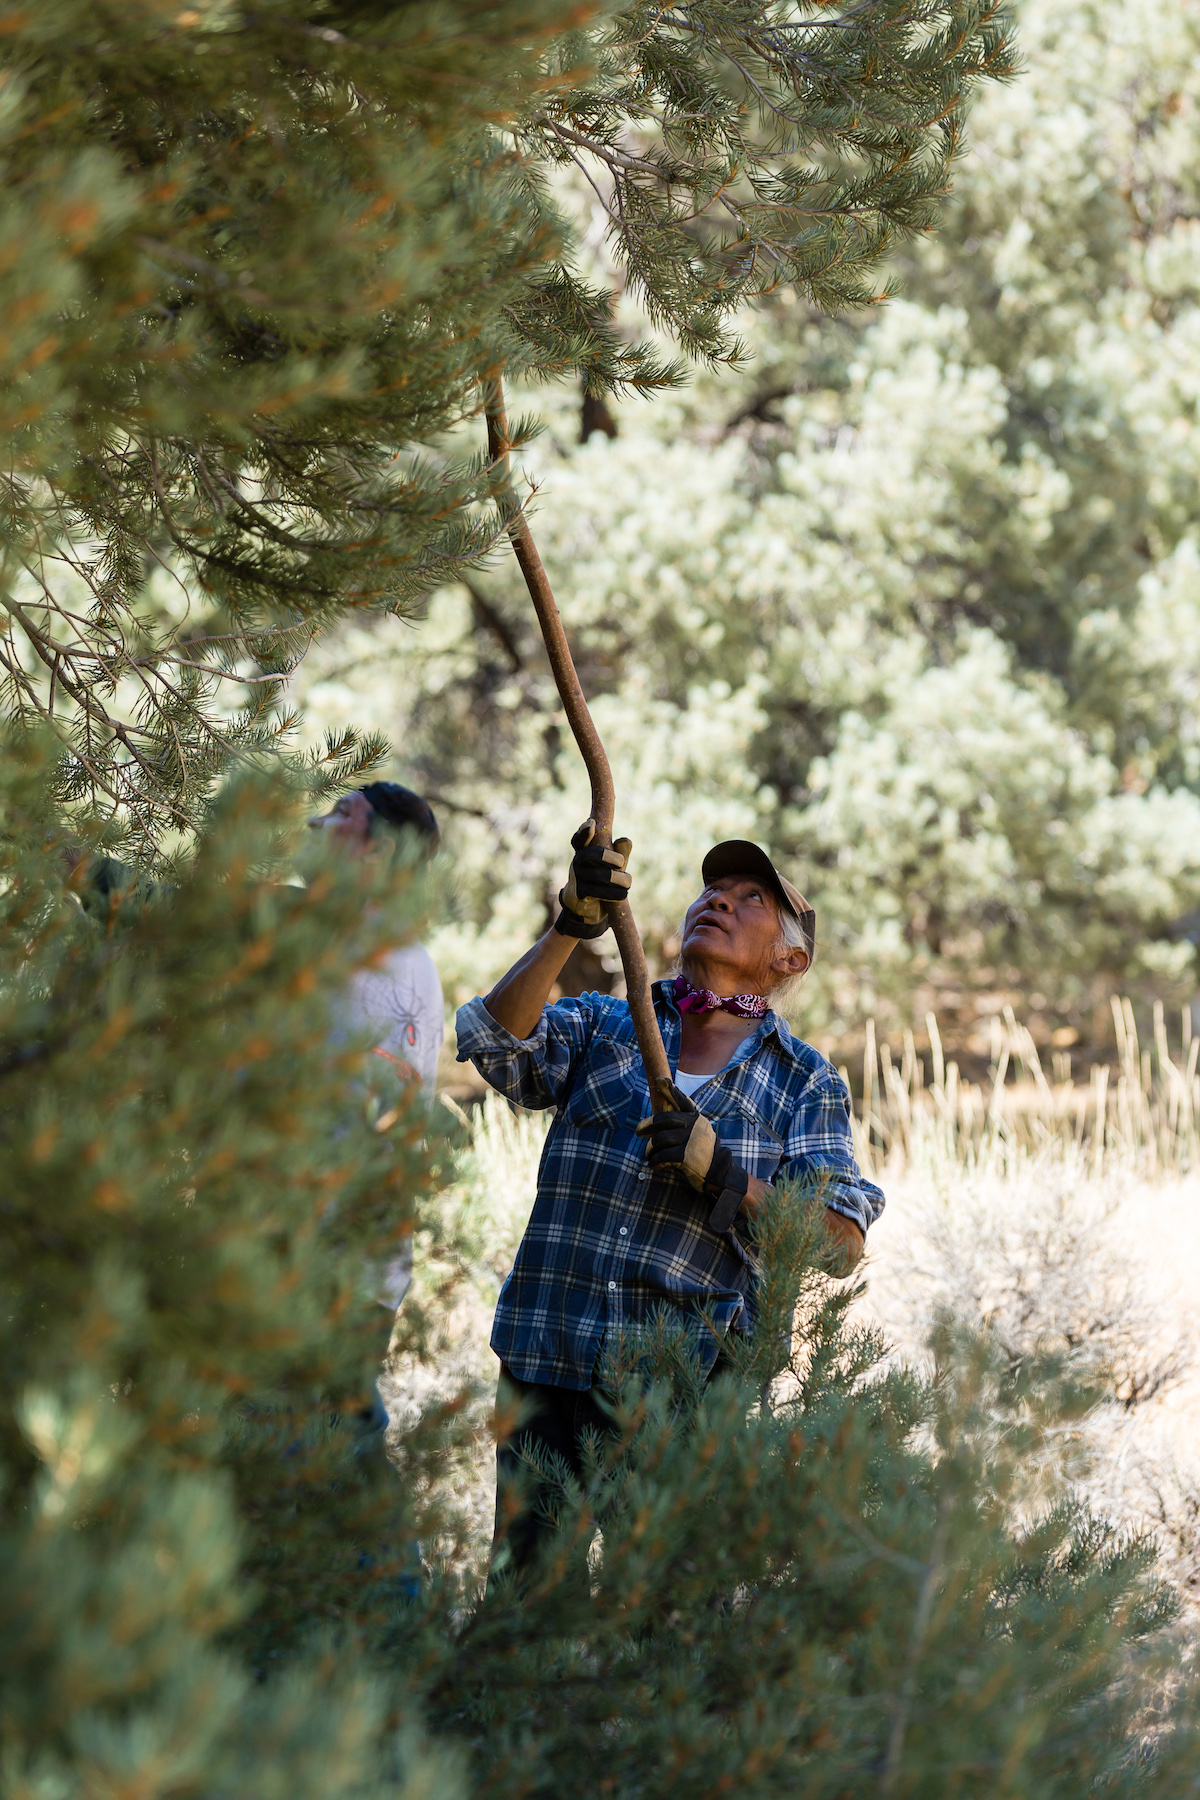 Johnny Bob, a spiritual leader from Yomba Shoshone Tribe, gathering pine cones in a mountain valley in central Nevada. (Photo by Joseph Zummo).